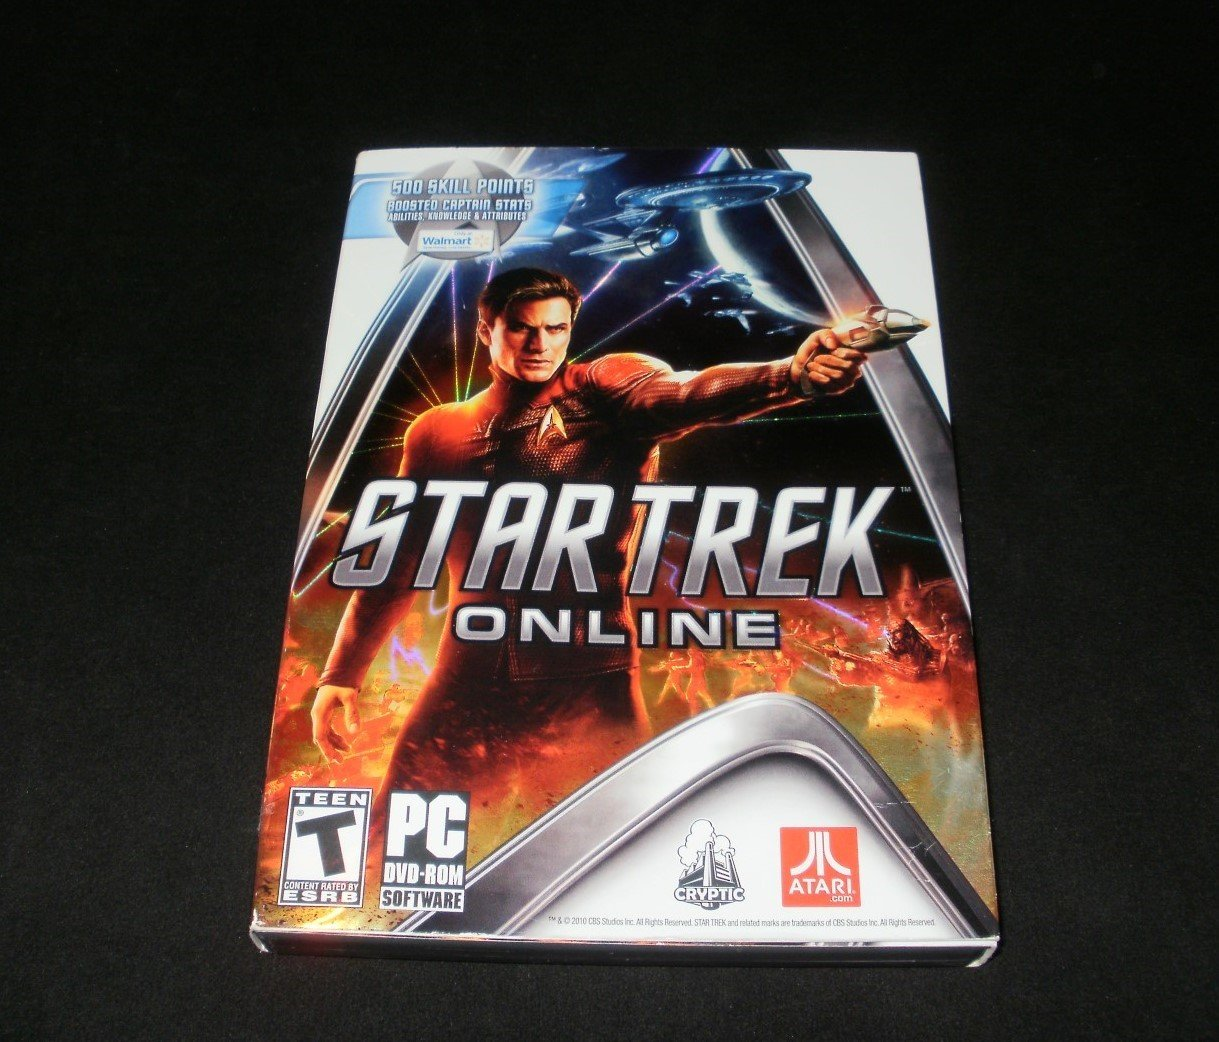 Star Trek Online - 2010 Atari - Windows PC - Complete CIB